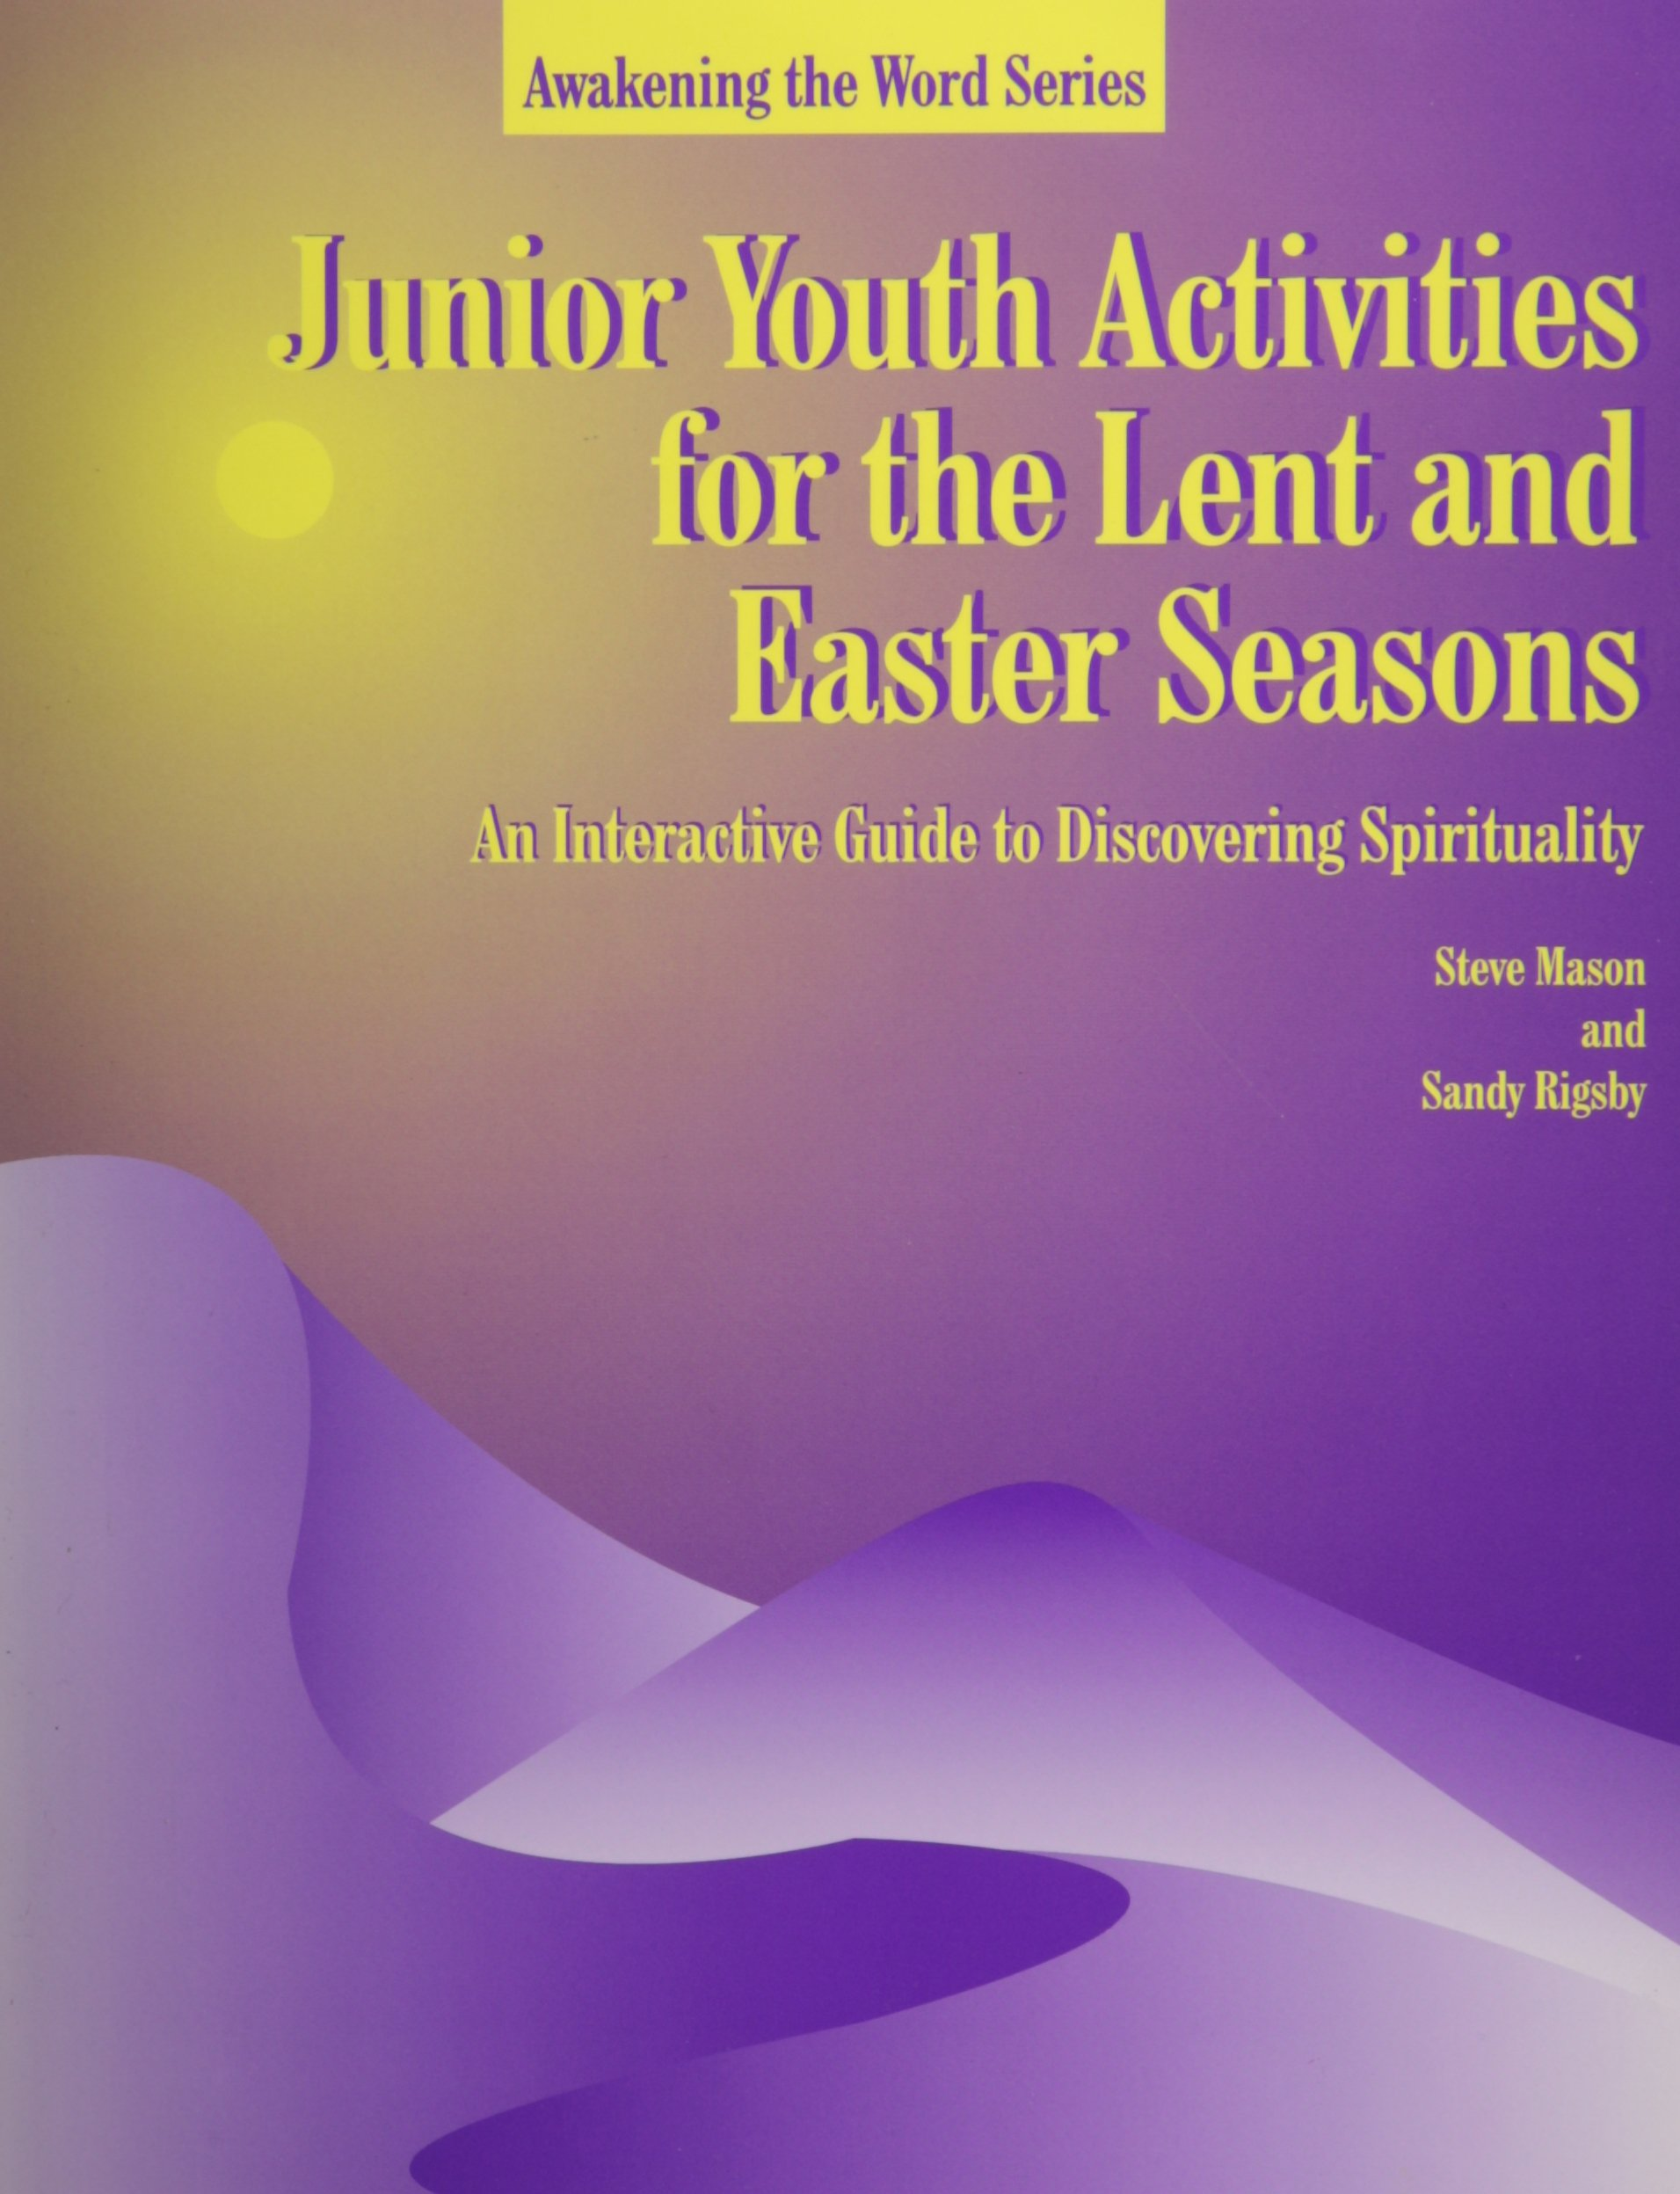 Junior Youth Activities for Lent and Easter Seasons: An Interactive Guide to Discovering Spirituality (Awakening the Word Series) pdf